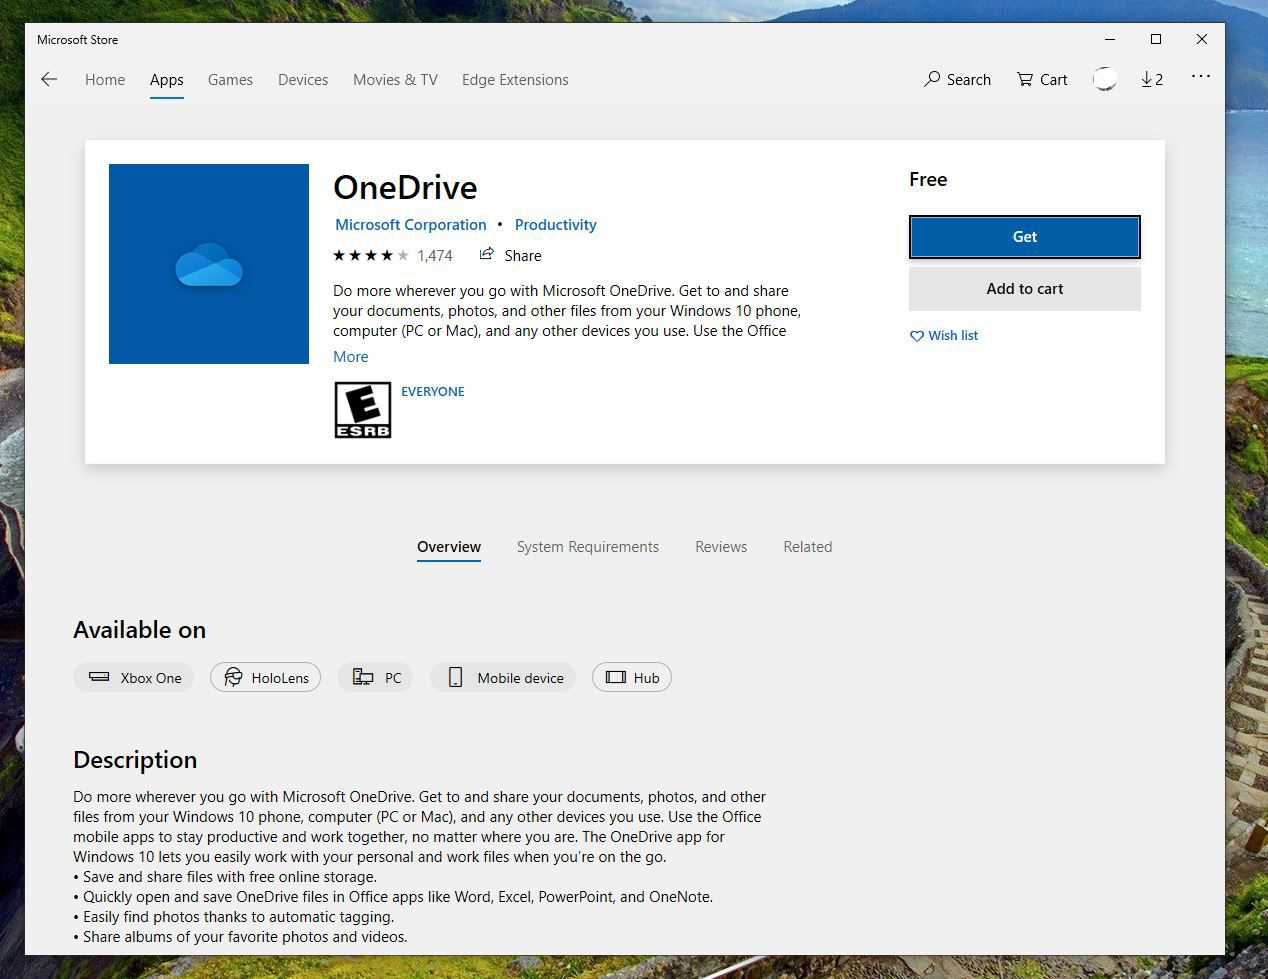 OneDrive app in the Microsoft Store